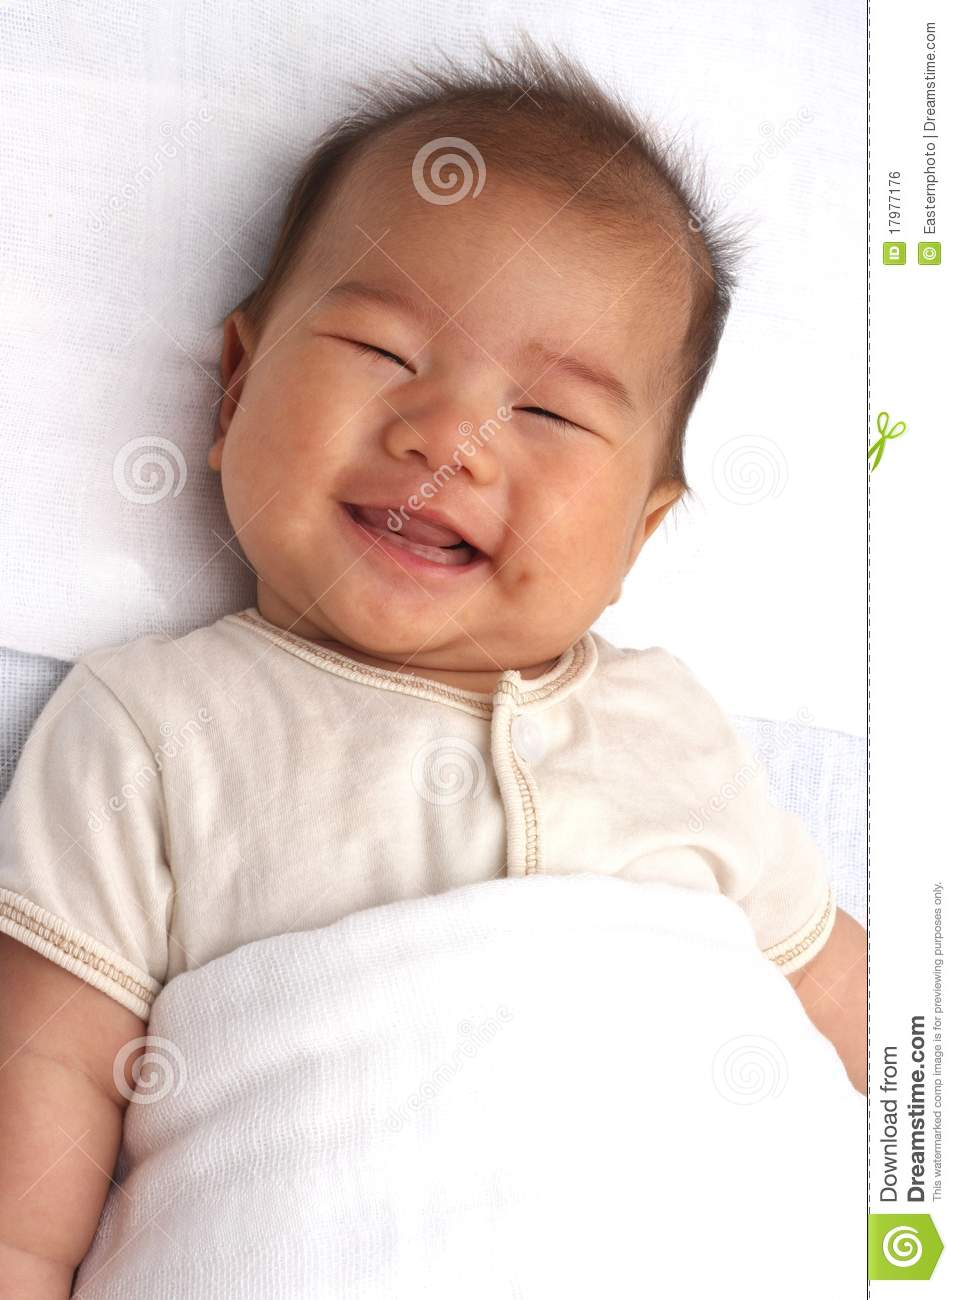 How Old When Babies Laugh